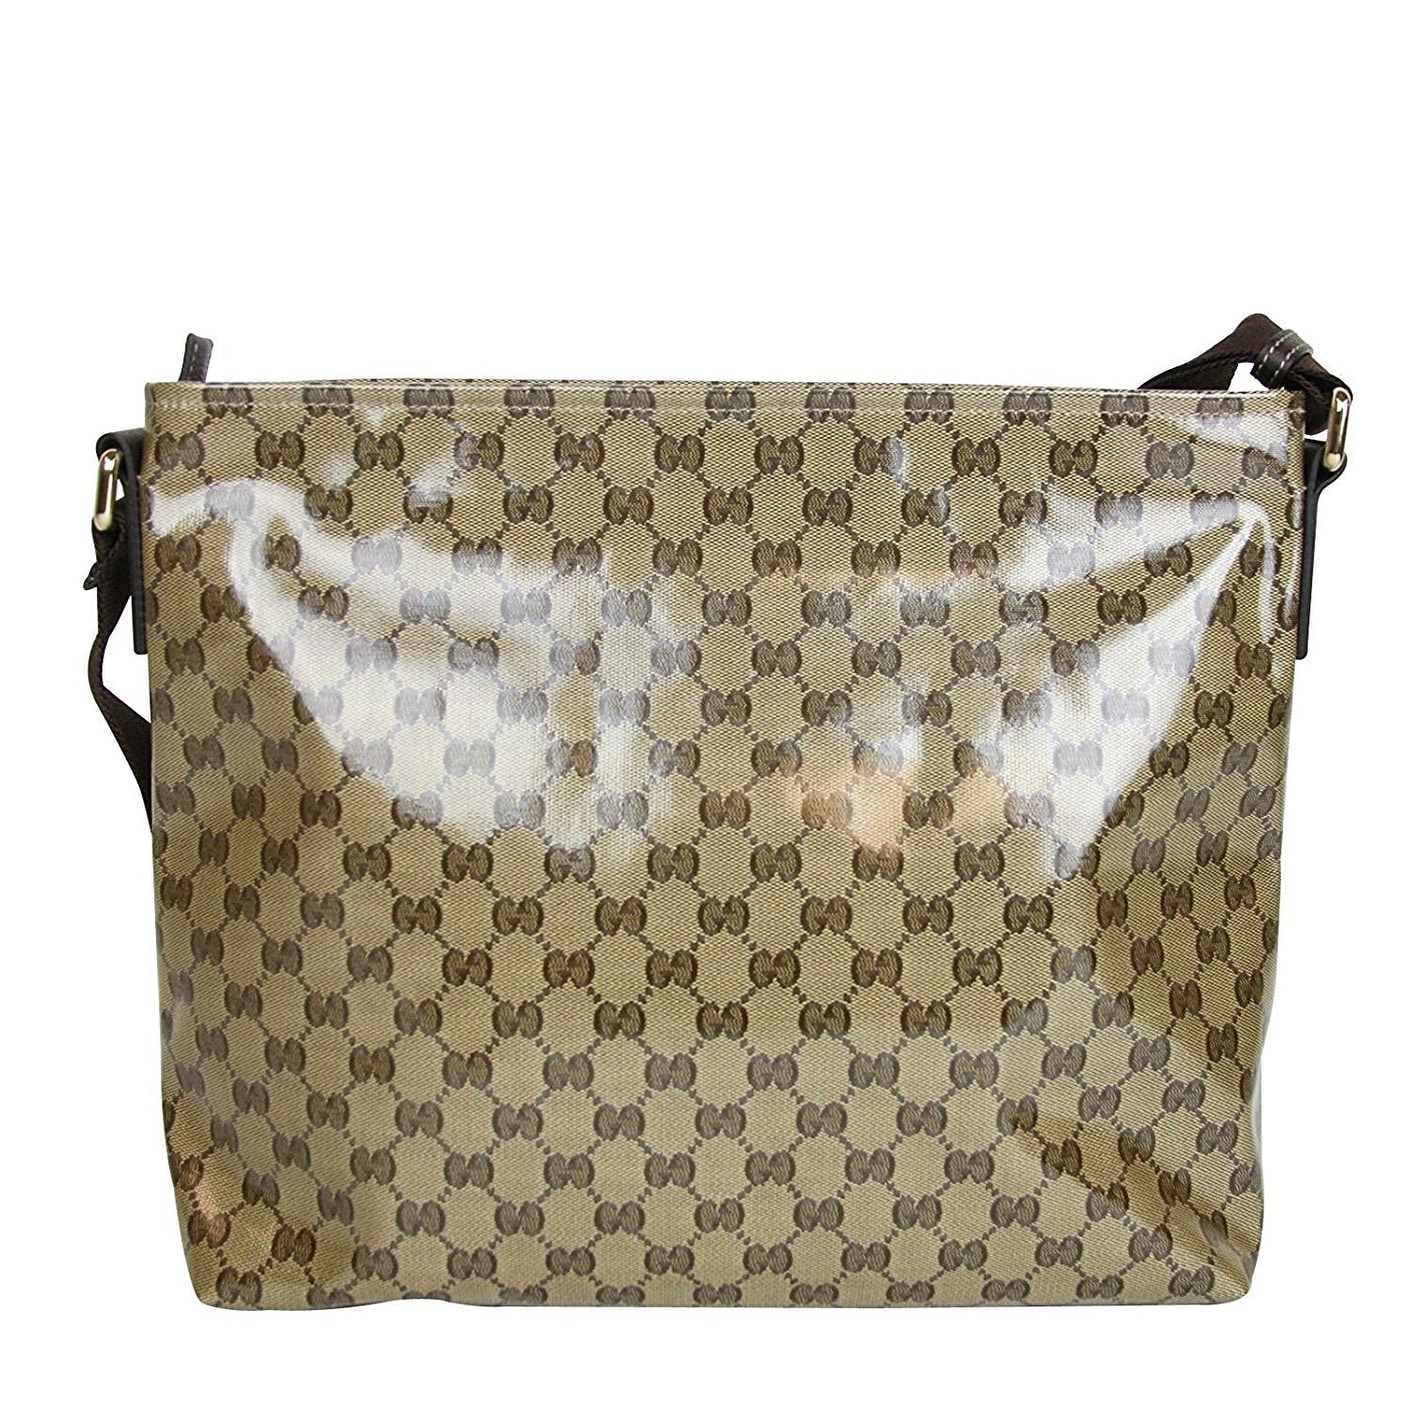 60f4f25a880 Shop Gucci Unisex Brown Crystal Canvas GG Messenger Bag 339569 9790 - One  size - Free Shipping Today - Overstock - 27603090